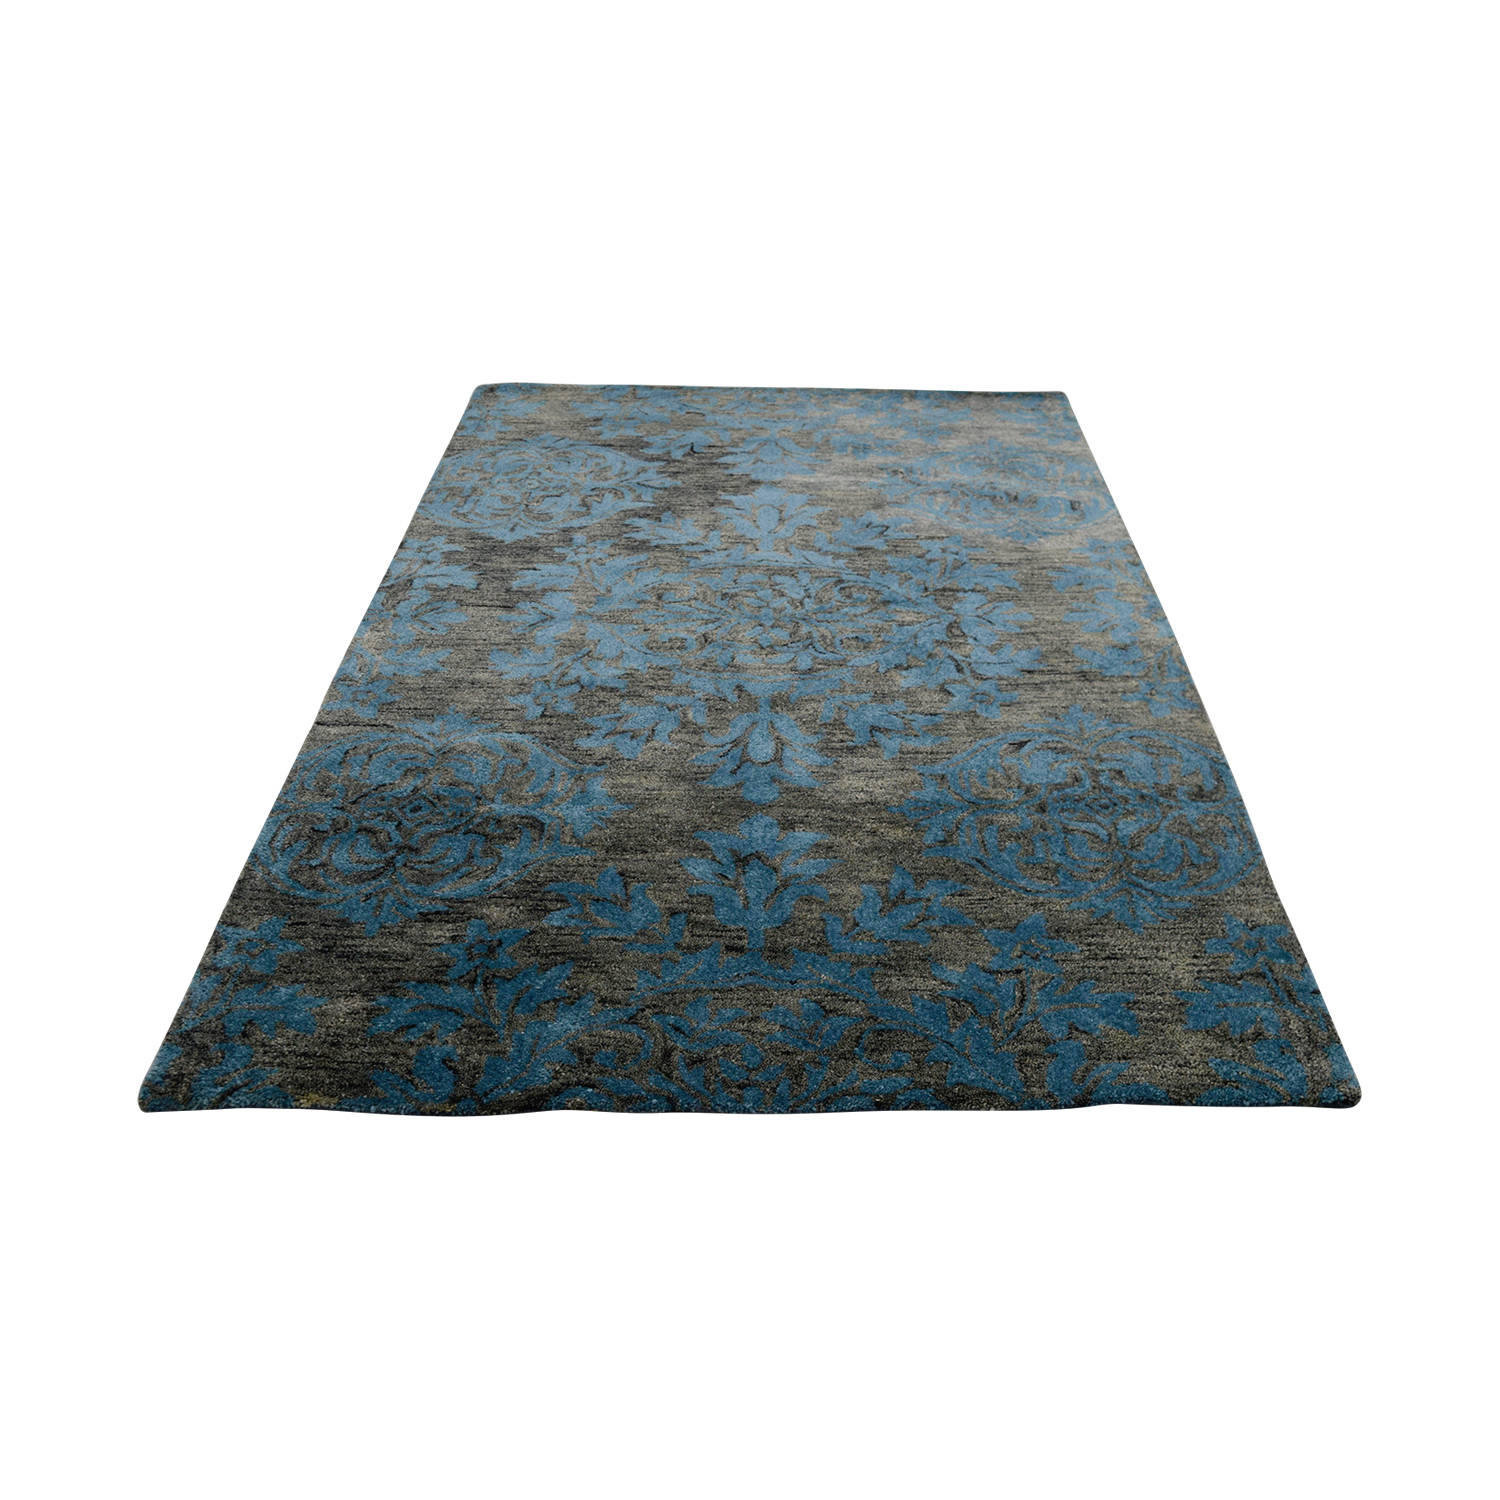 Obeetee Obeetee 5 X 8 Blue Raise Floral Rug second hand